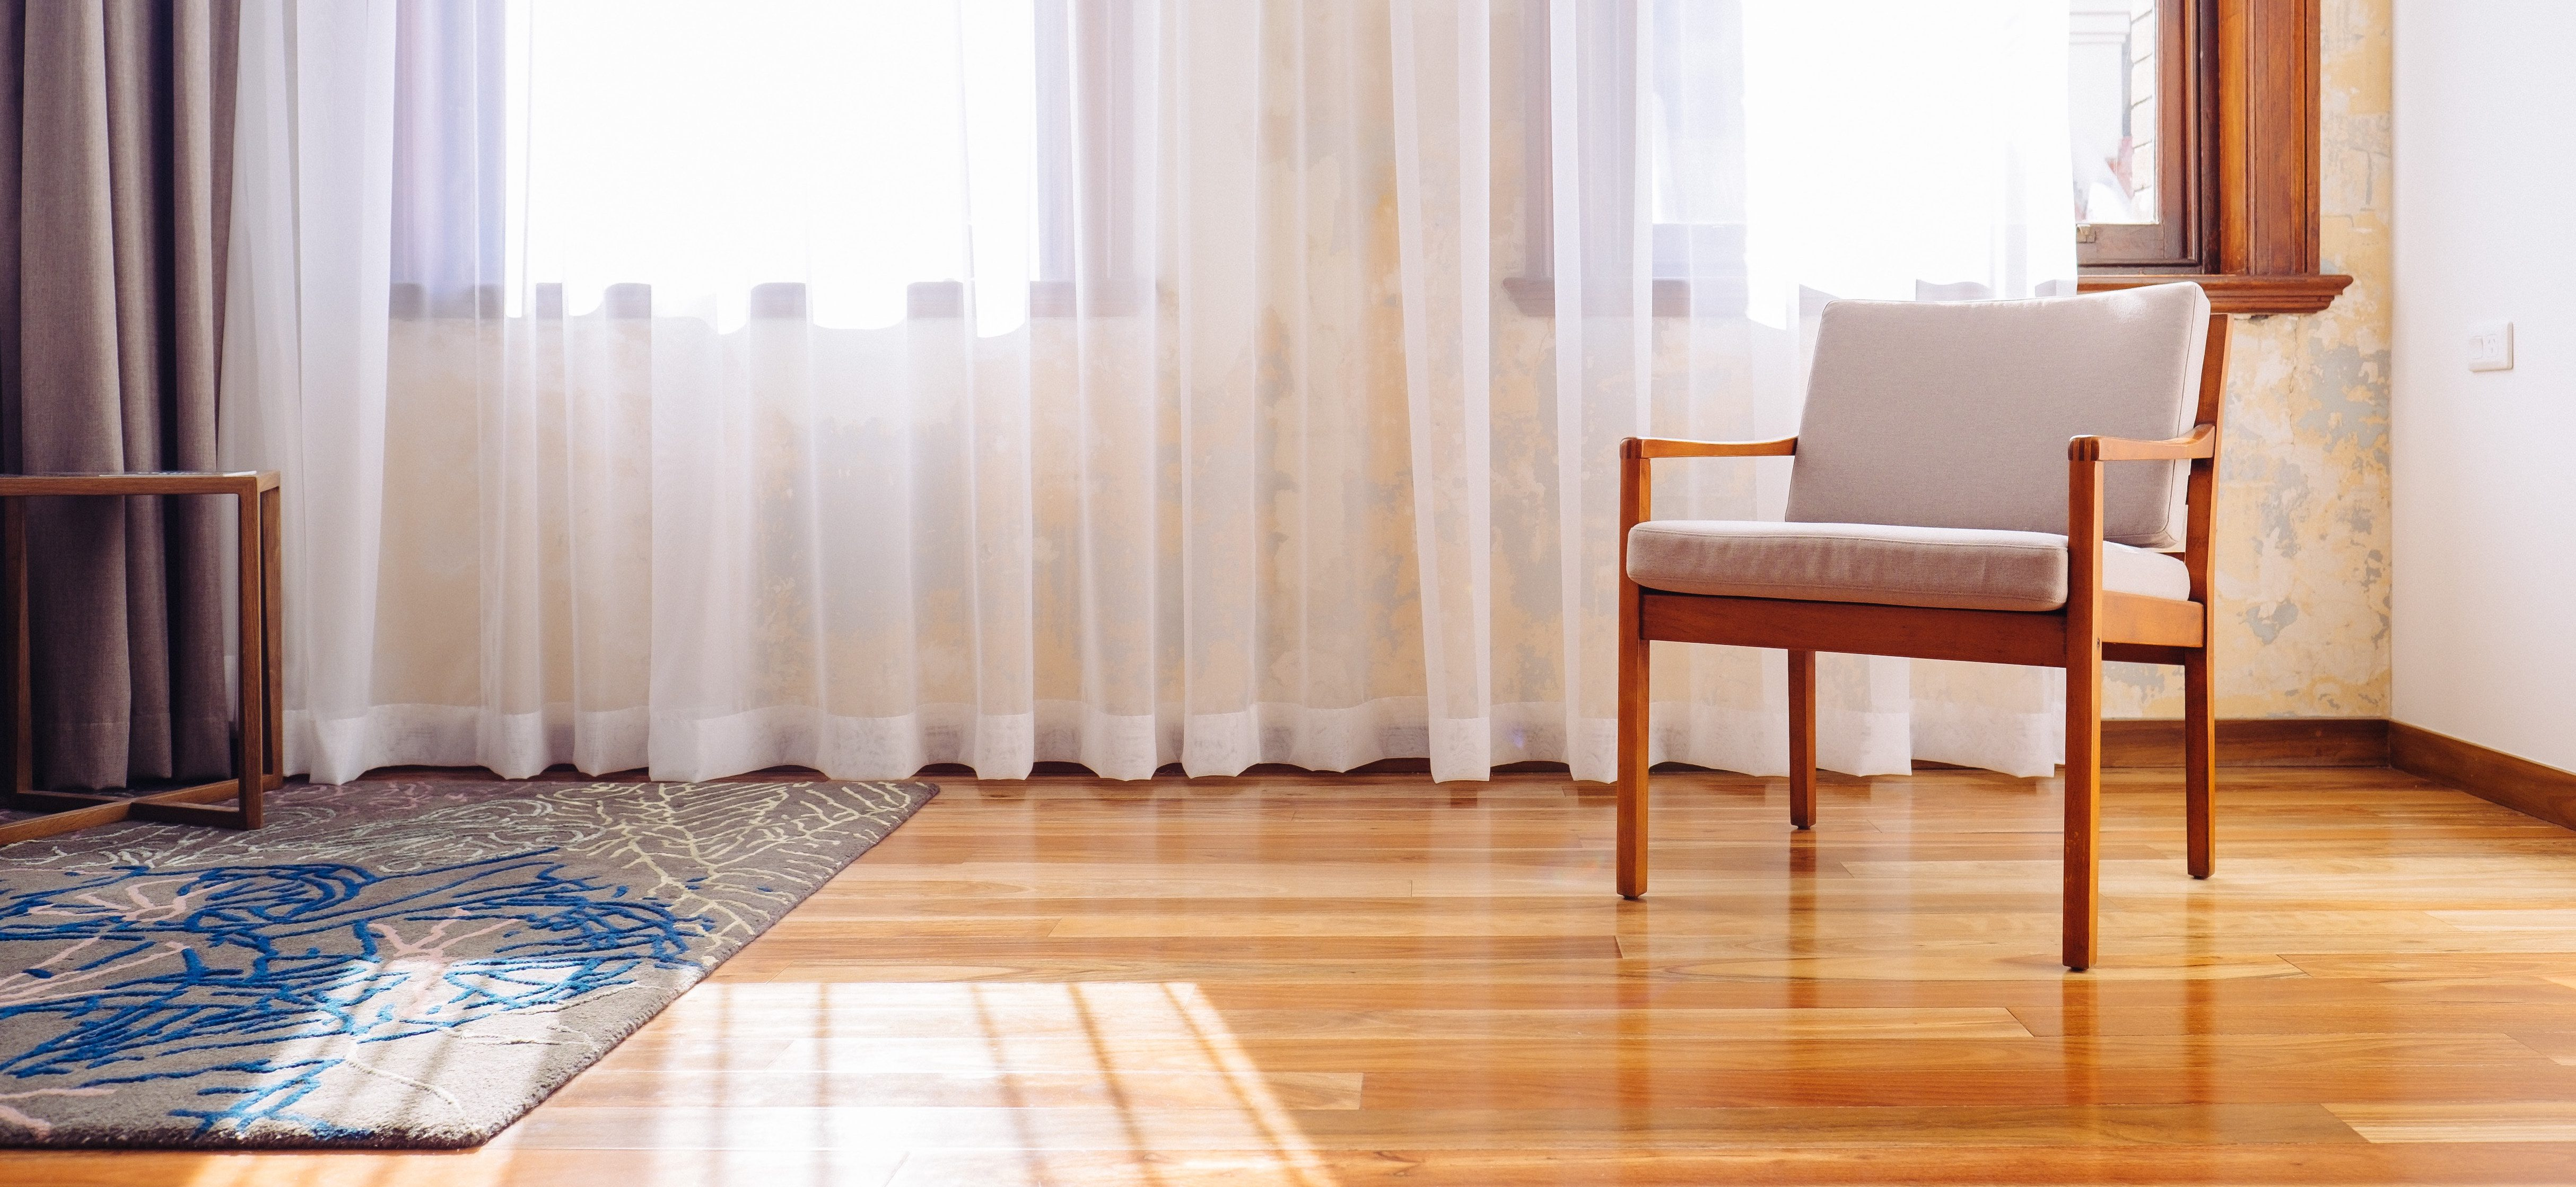 Buying Furniture: What's Worth Splurging On And What's Not